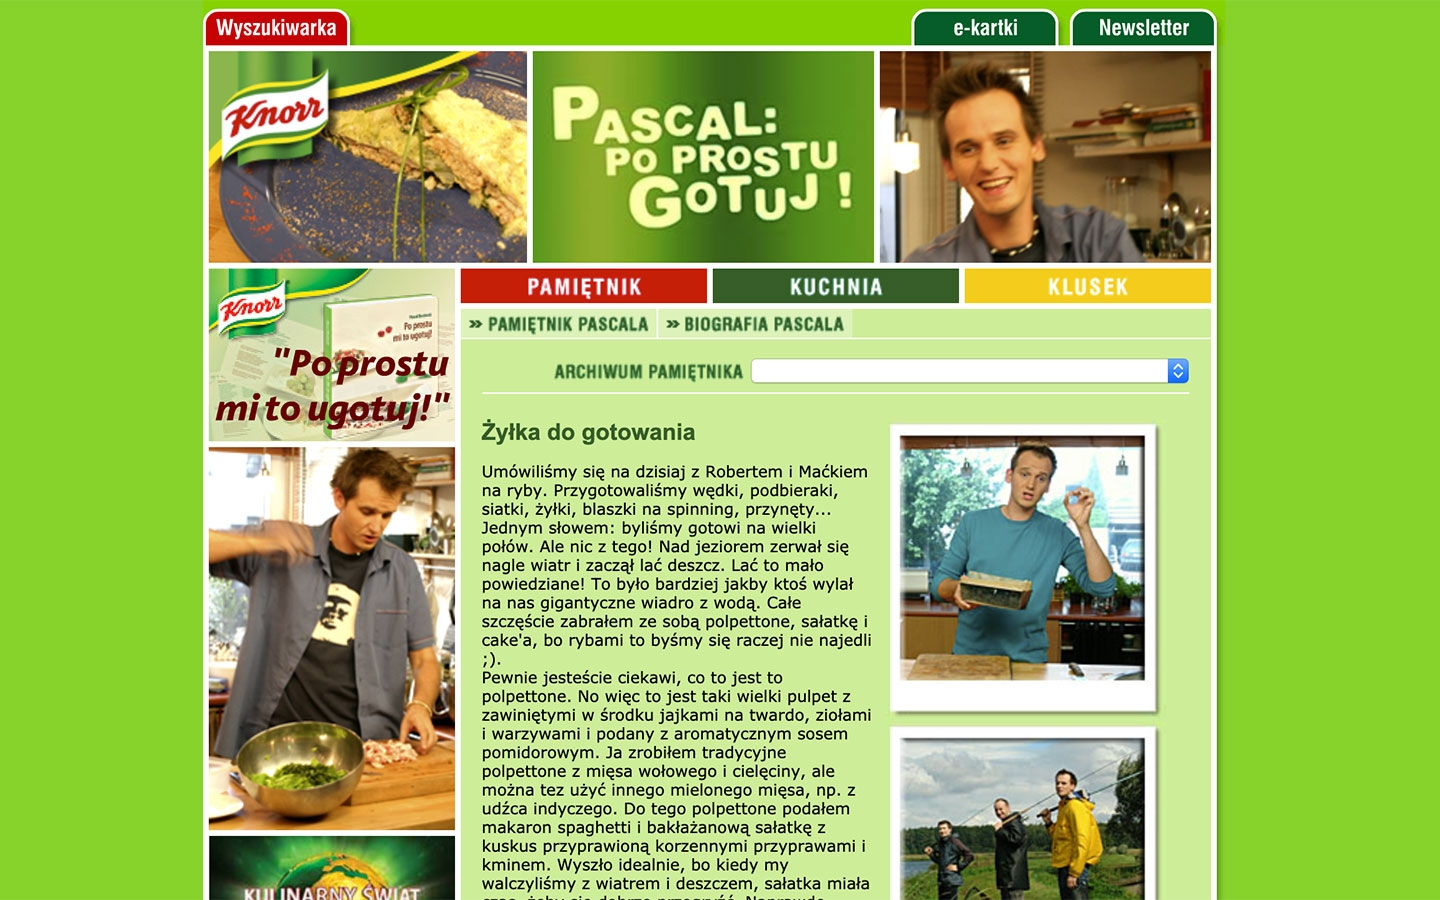 Pascal: Po Prostu Gotuj! | poprostugotuj.onet.pl | 2004 (Screen Only 05) © echonet communication